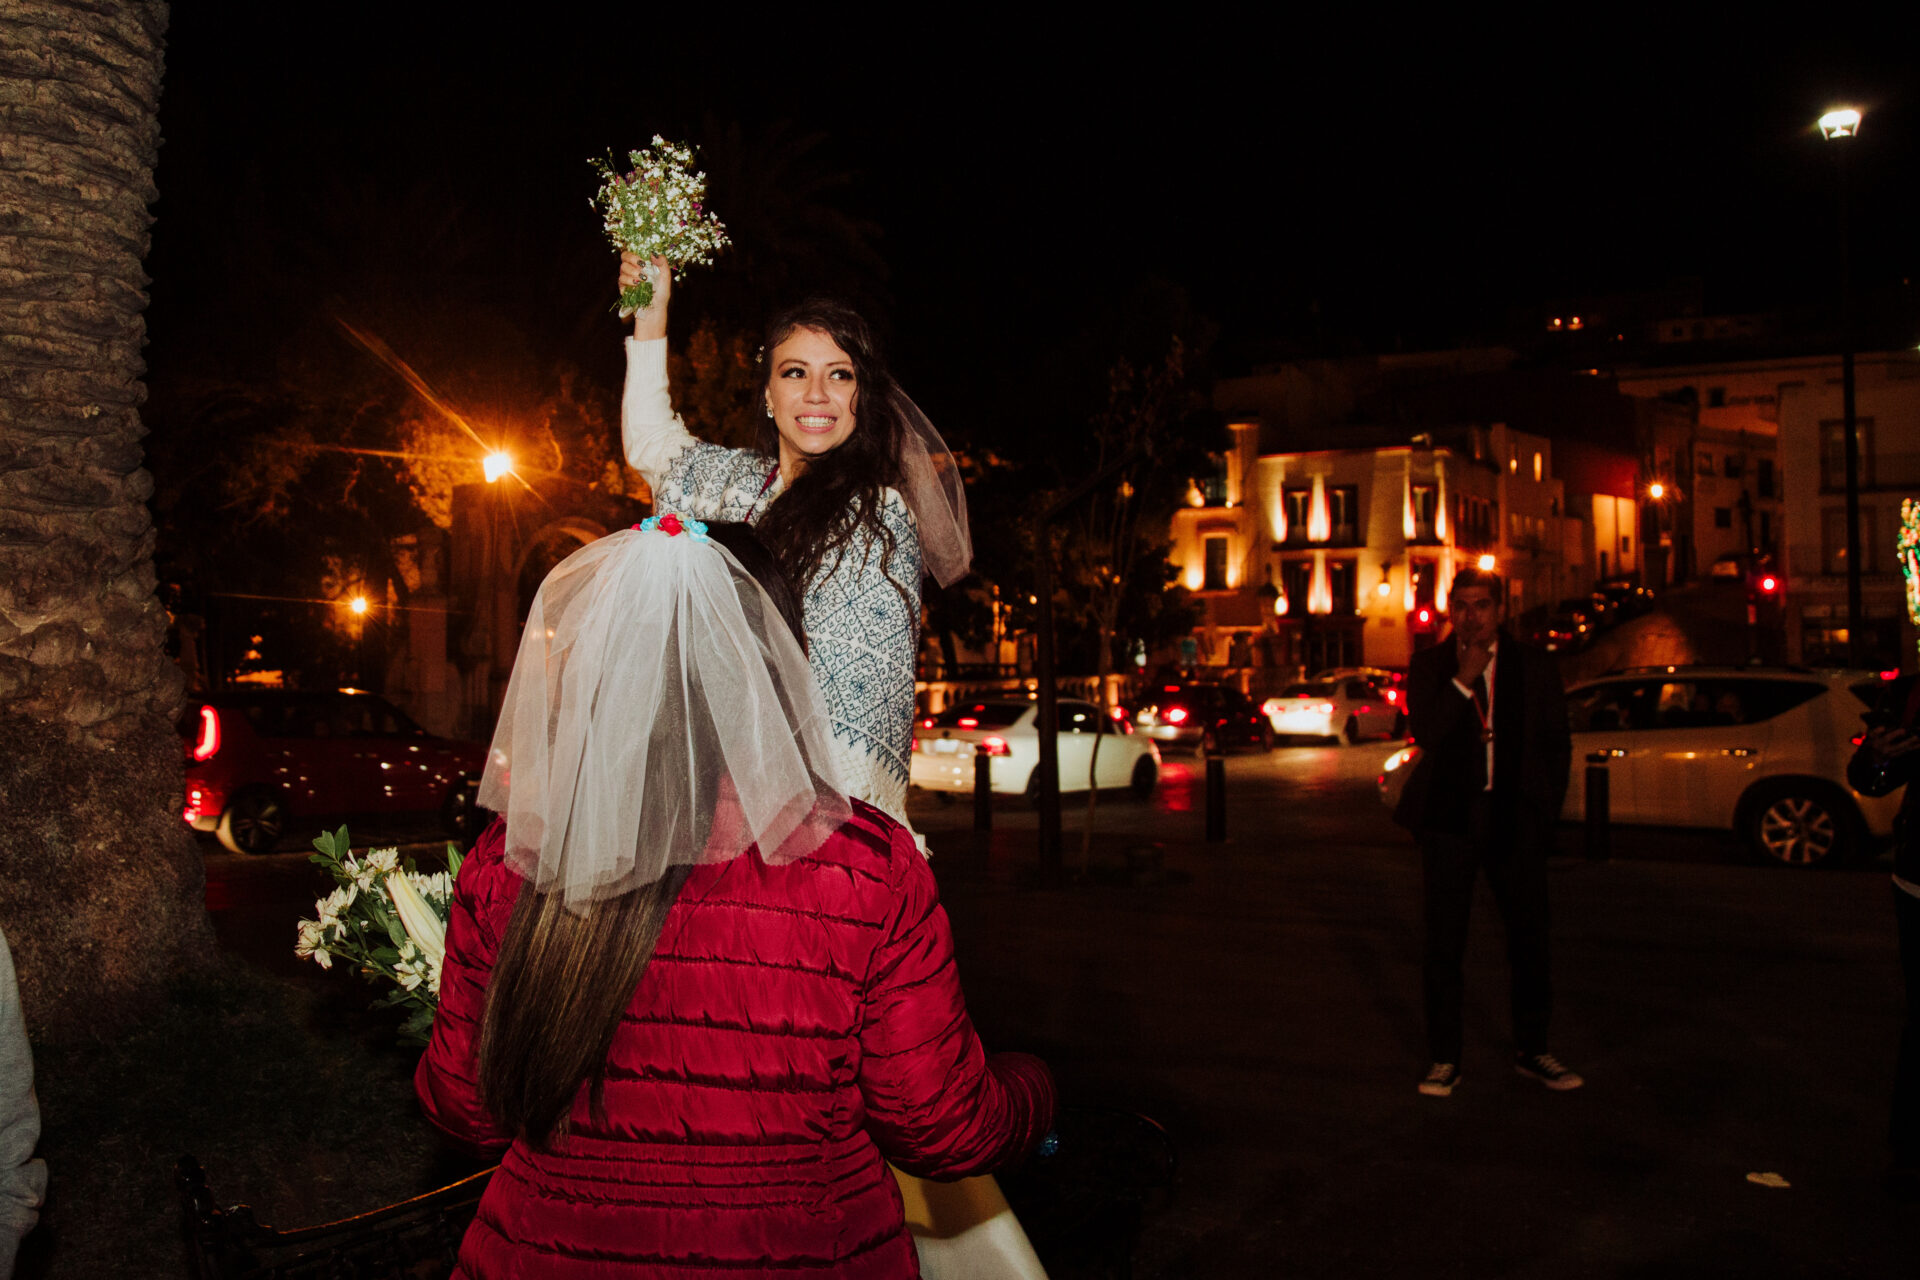 javier_noriega_fotografo_bodas_la_mina_club_zacatecas_wedding_photographer40